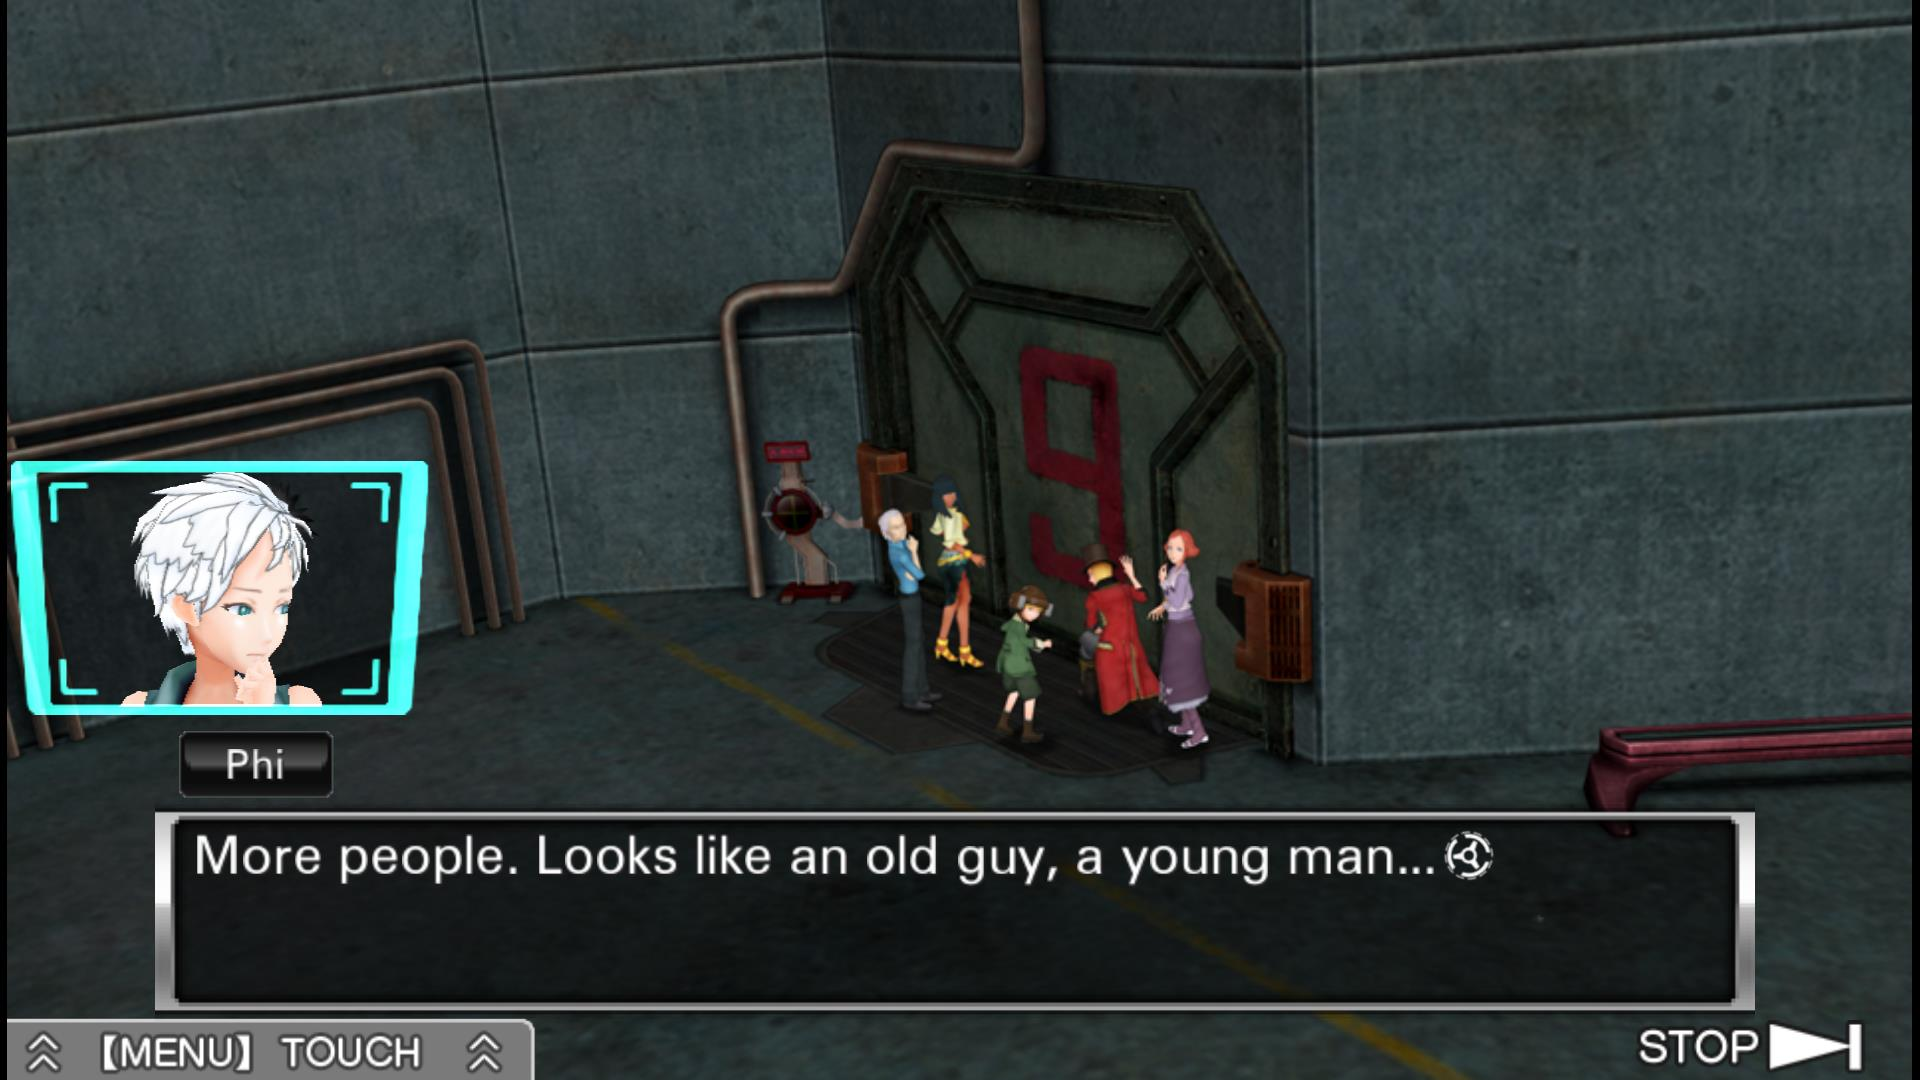 Zero Escape The Nonary Games Revealed For PlayStation 4